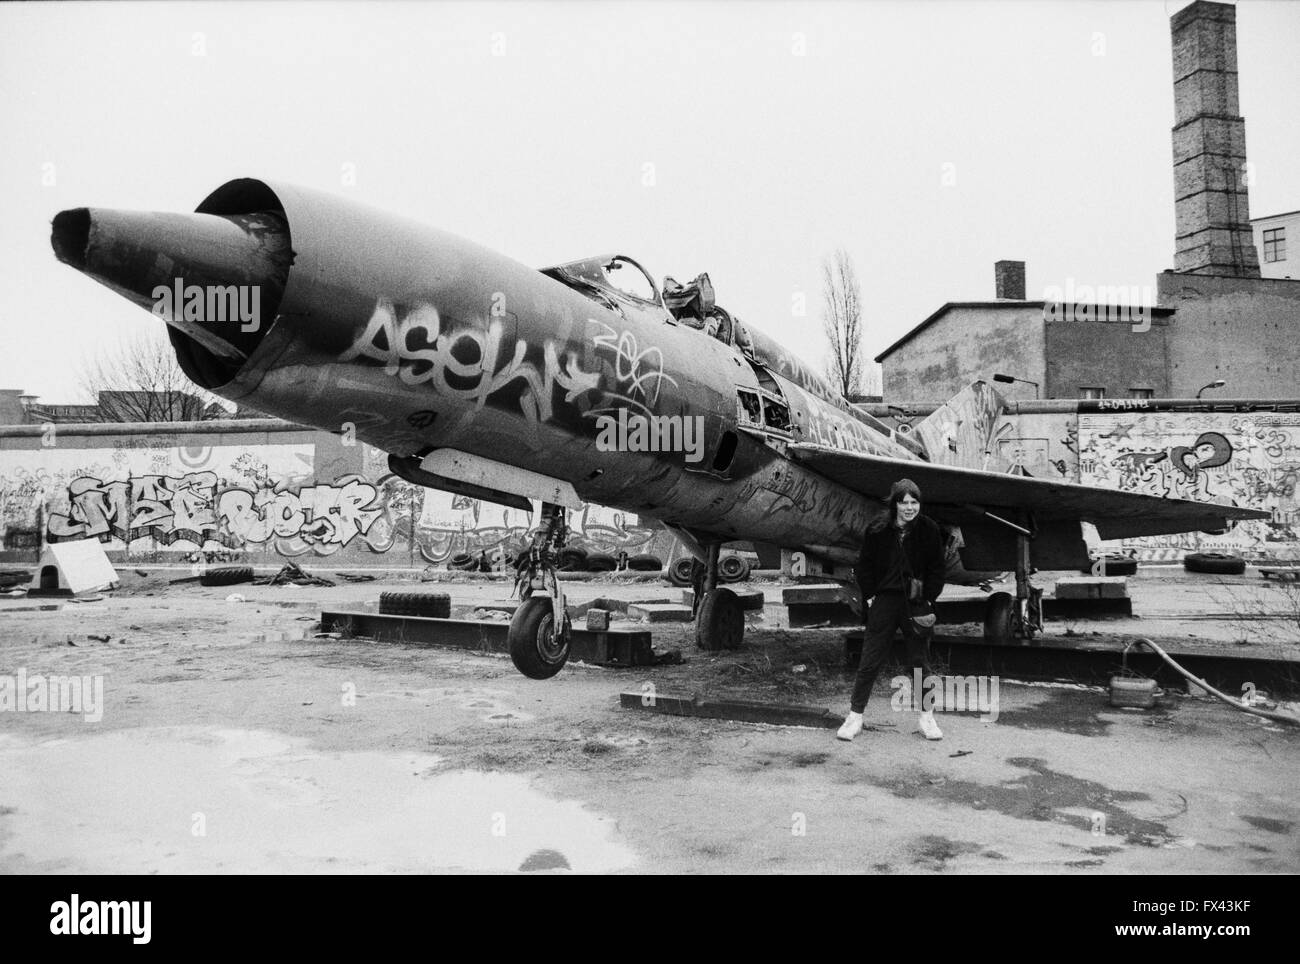 archive-image-of-a-young-woman-in-front-of-soviet-mig-21-fighter-mutoid-FX43KF.jpg